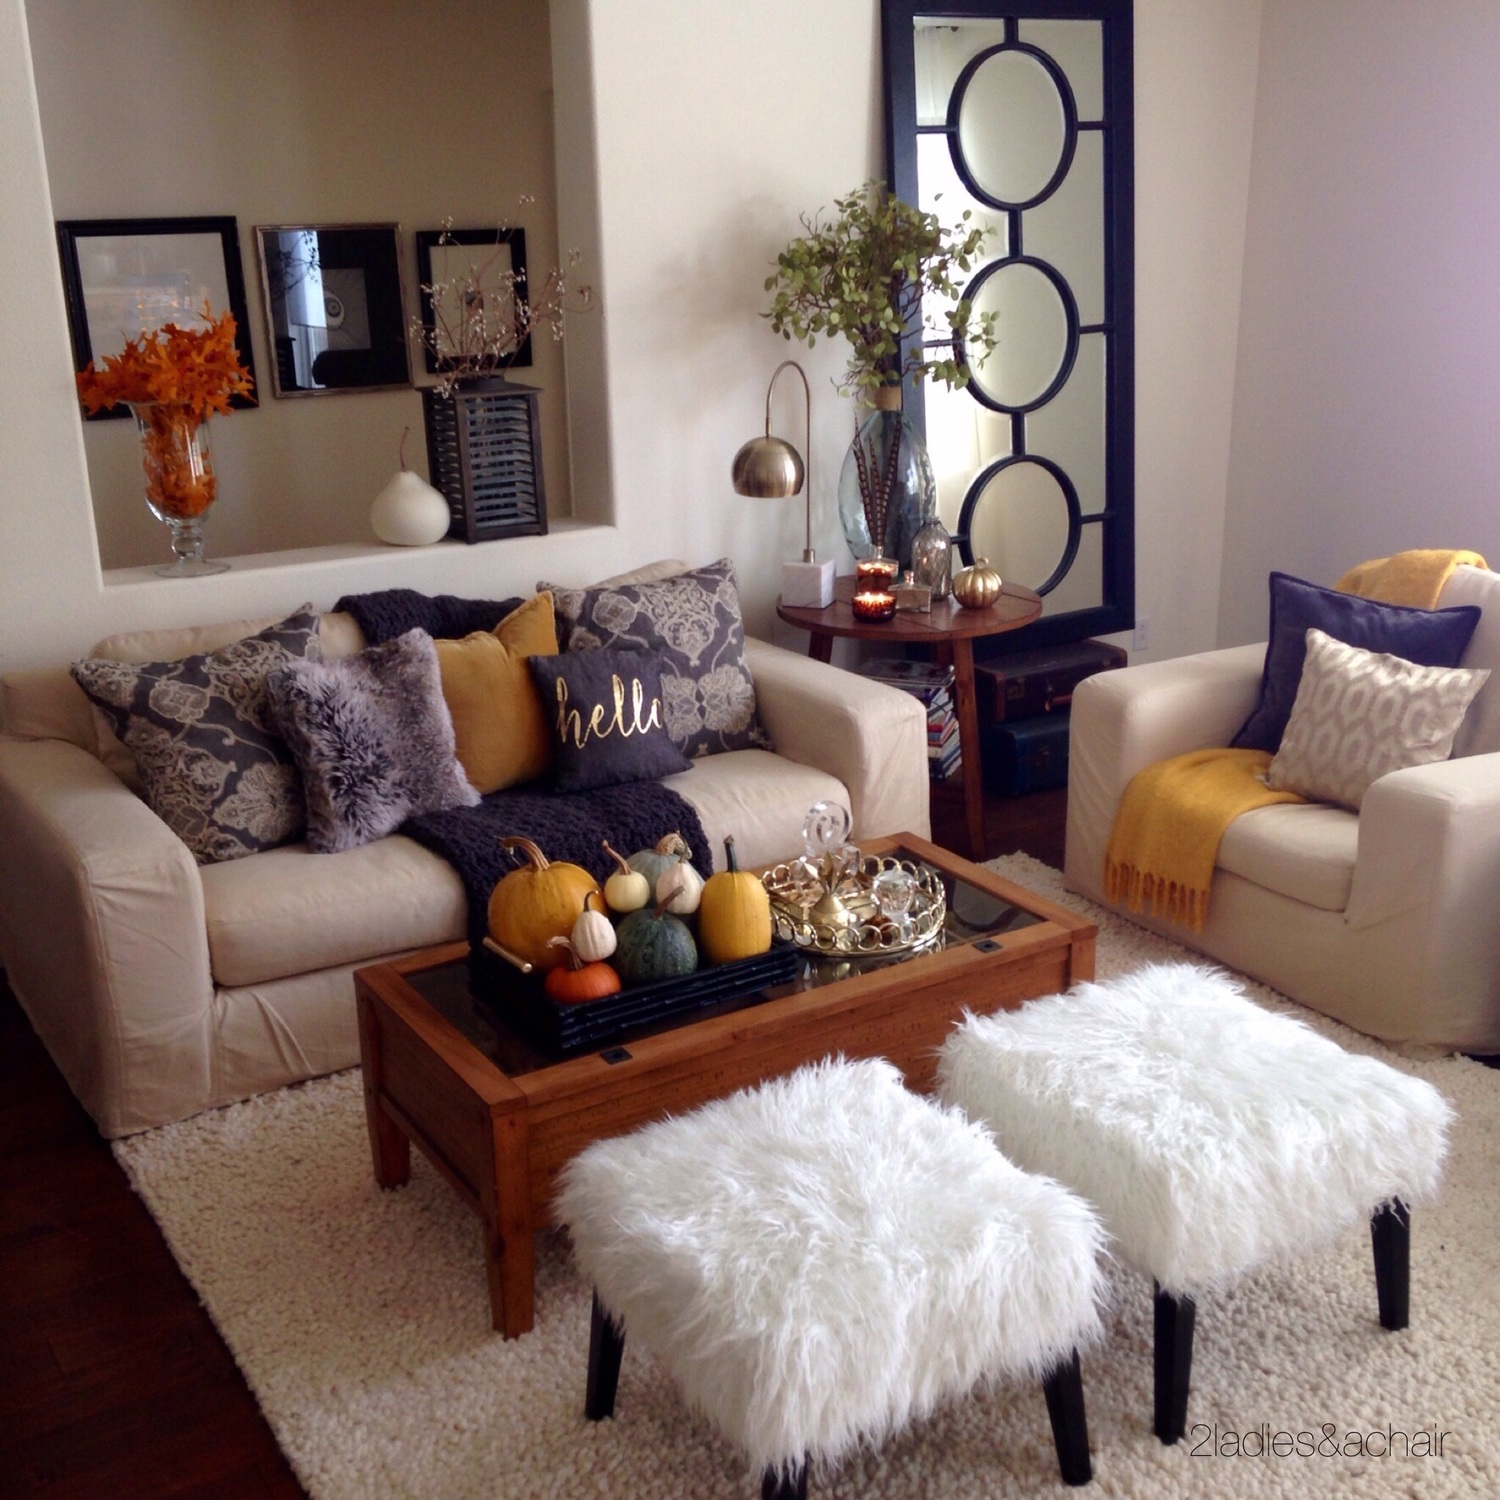 Last year my fall accent color was yellow, based on the gorgeous yellow pumpkins I found in Half Moon Bay, CA.